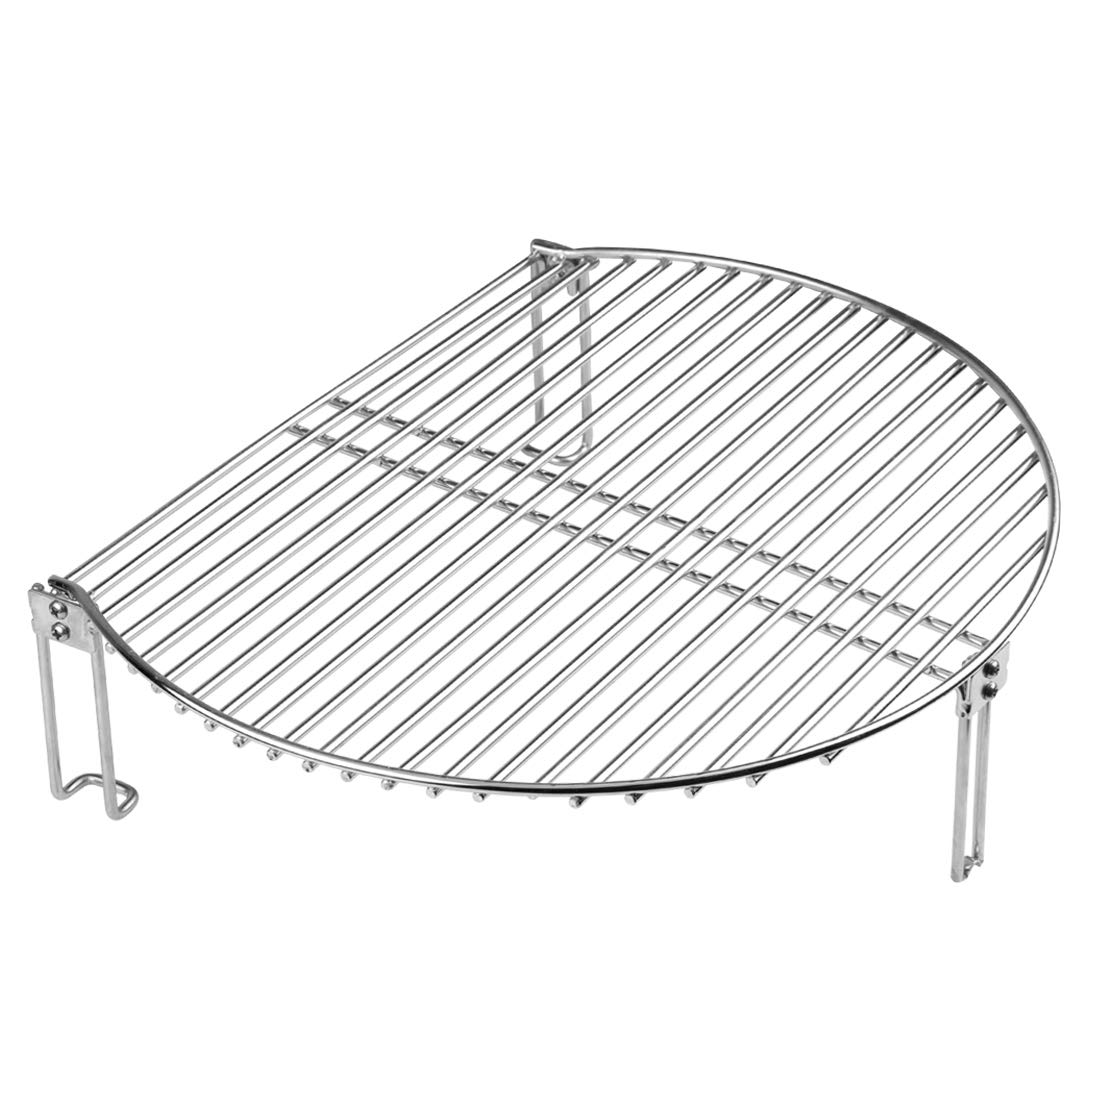 Dracarys Grill Expander Rack Stack Rack for Big Green Egg Stainless Steel BBQ Lover Gifts Fit Large & XL Big Green Egg, Kamado Joe,18'' or Bigger Diameter Grill,Increase Grilling Surface